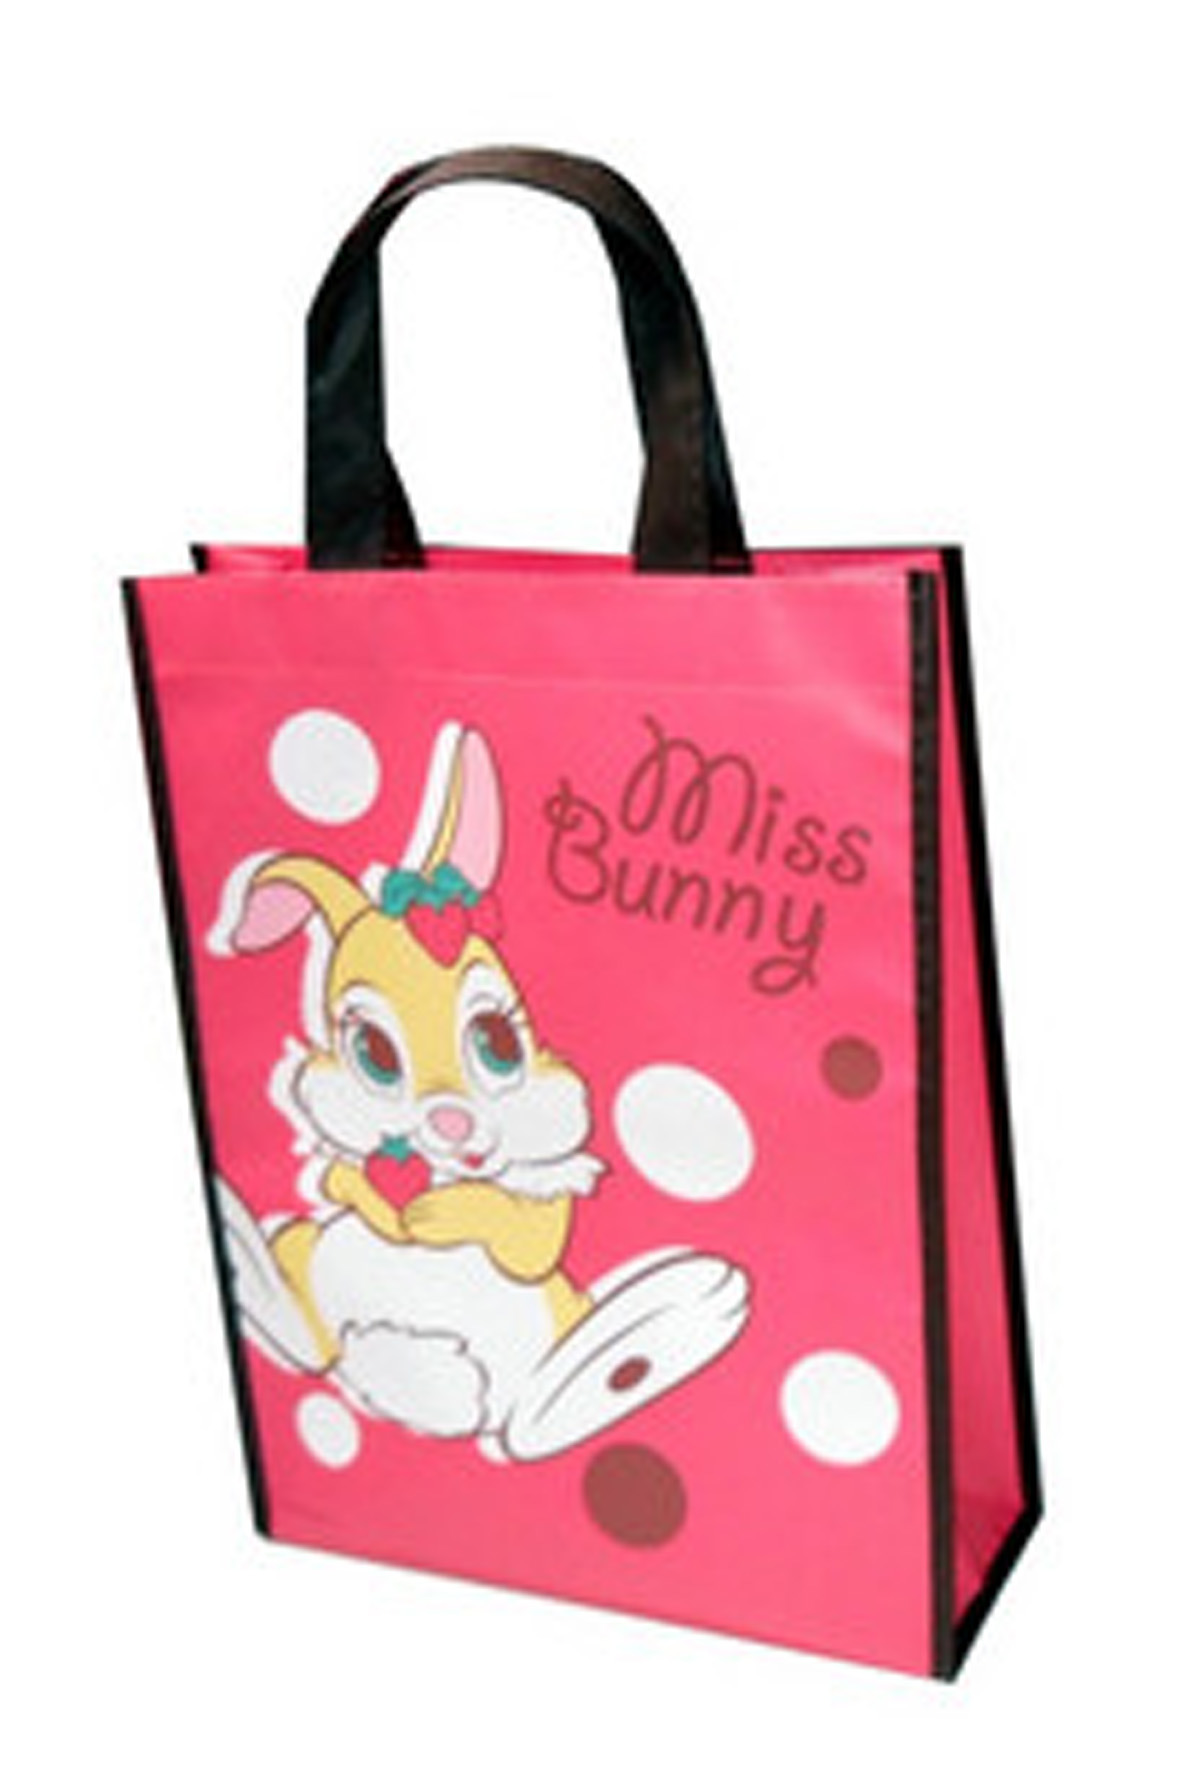 images of Cute Tote Bags